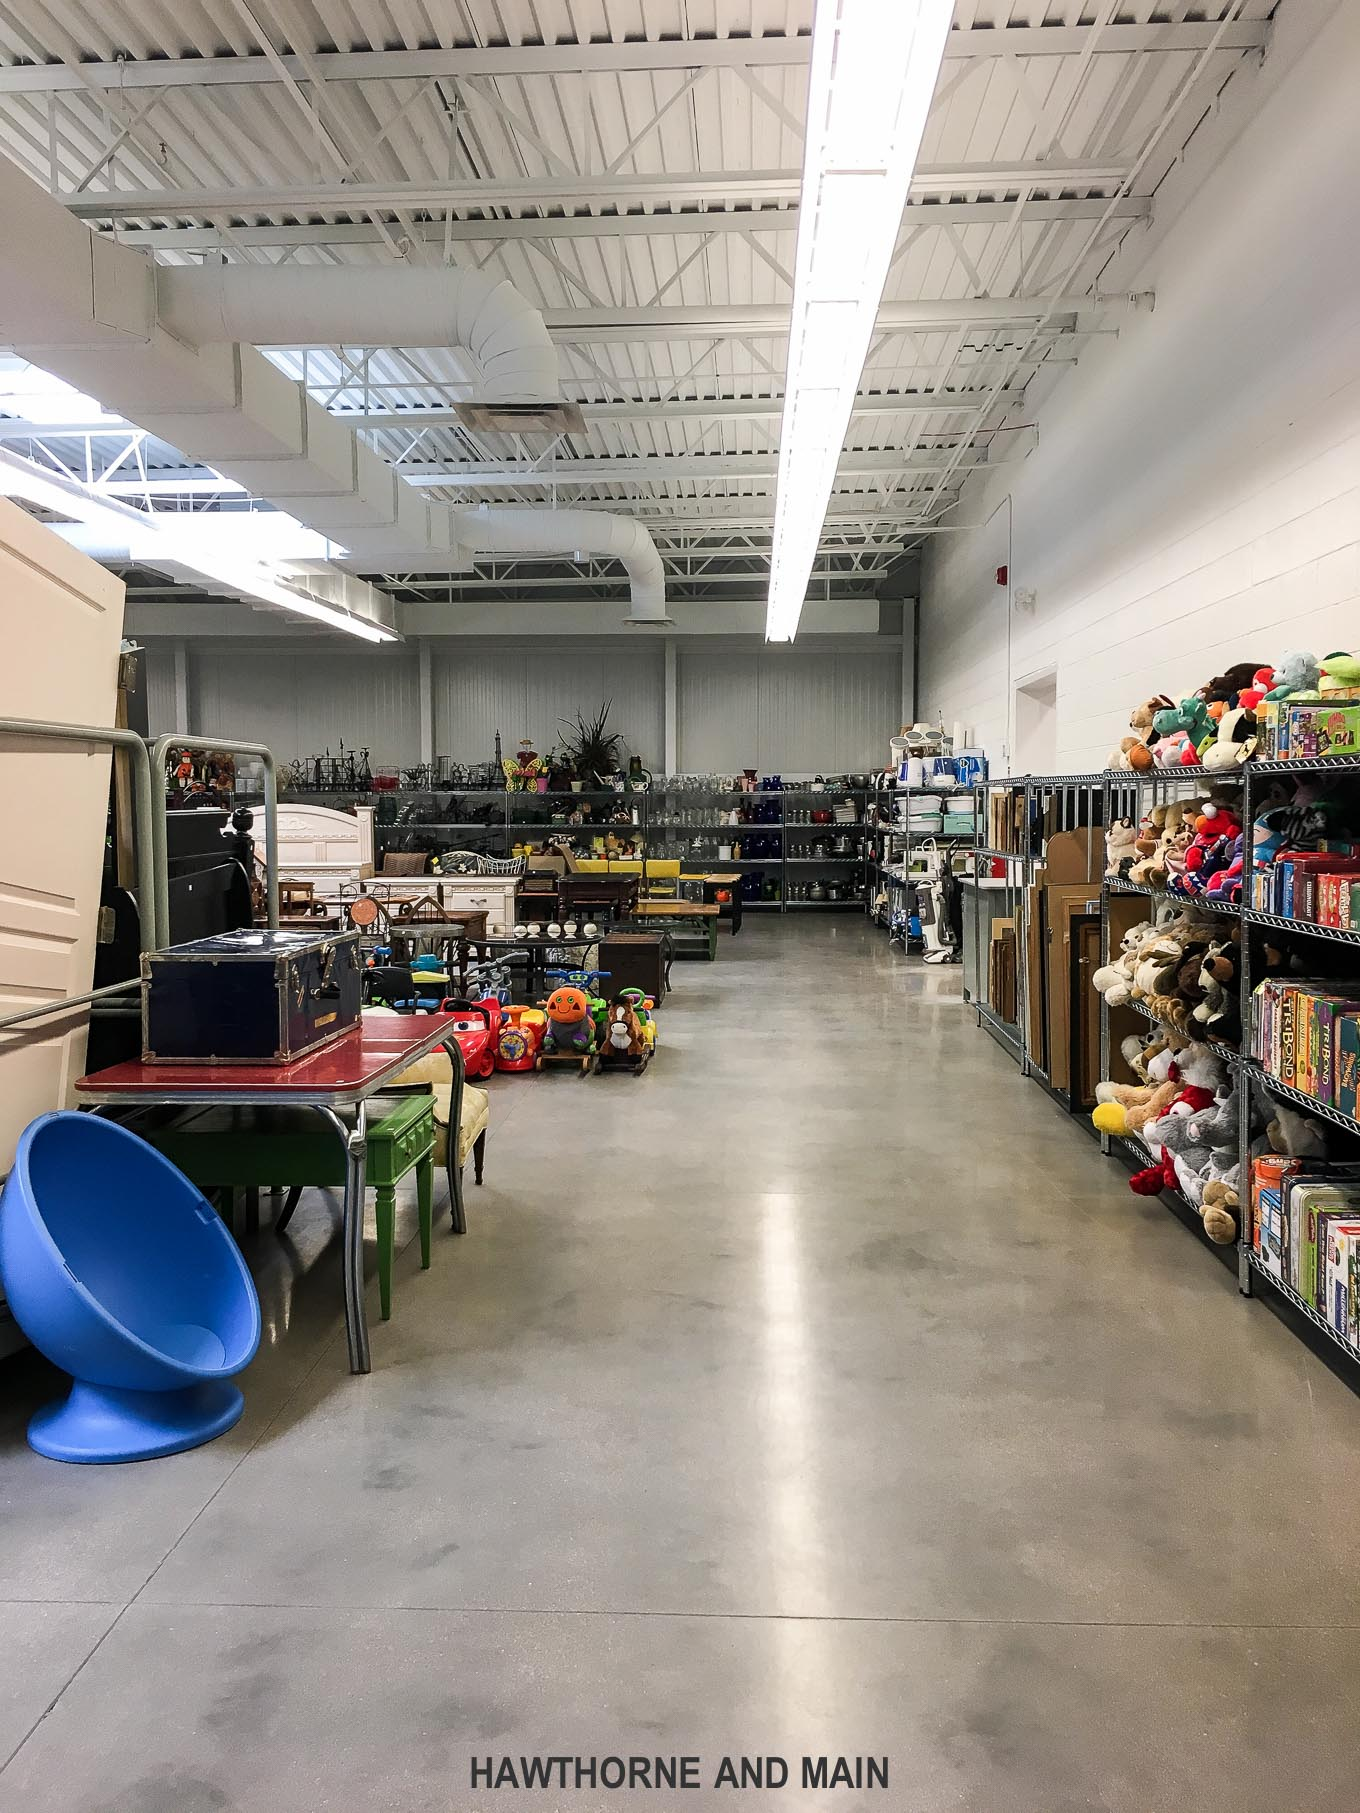 Deseret Industries is the leader in helping those in need get back on their feet again. They teach job skills and on site training...they change lives.